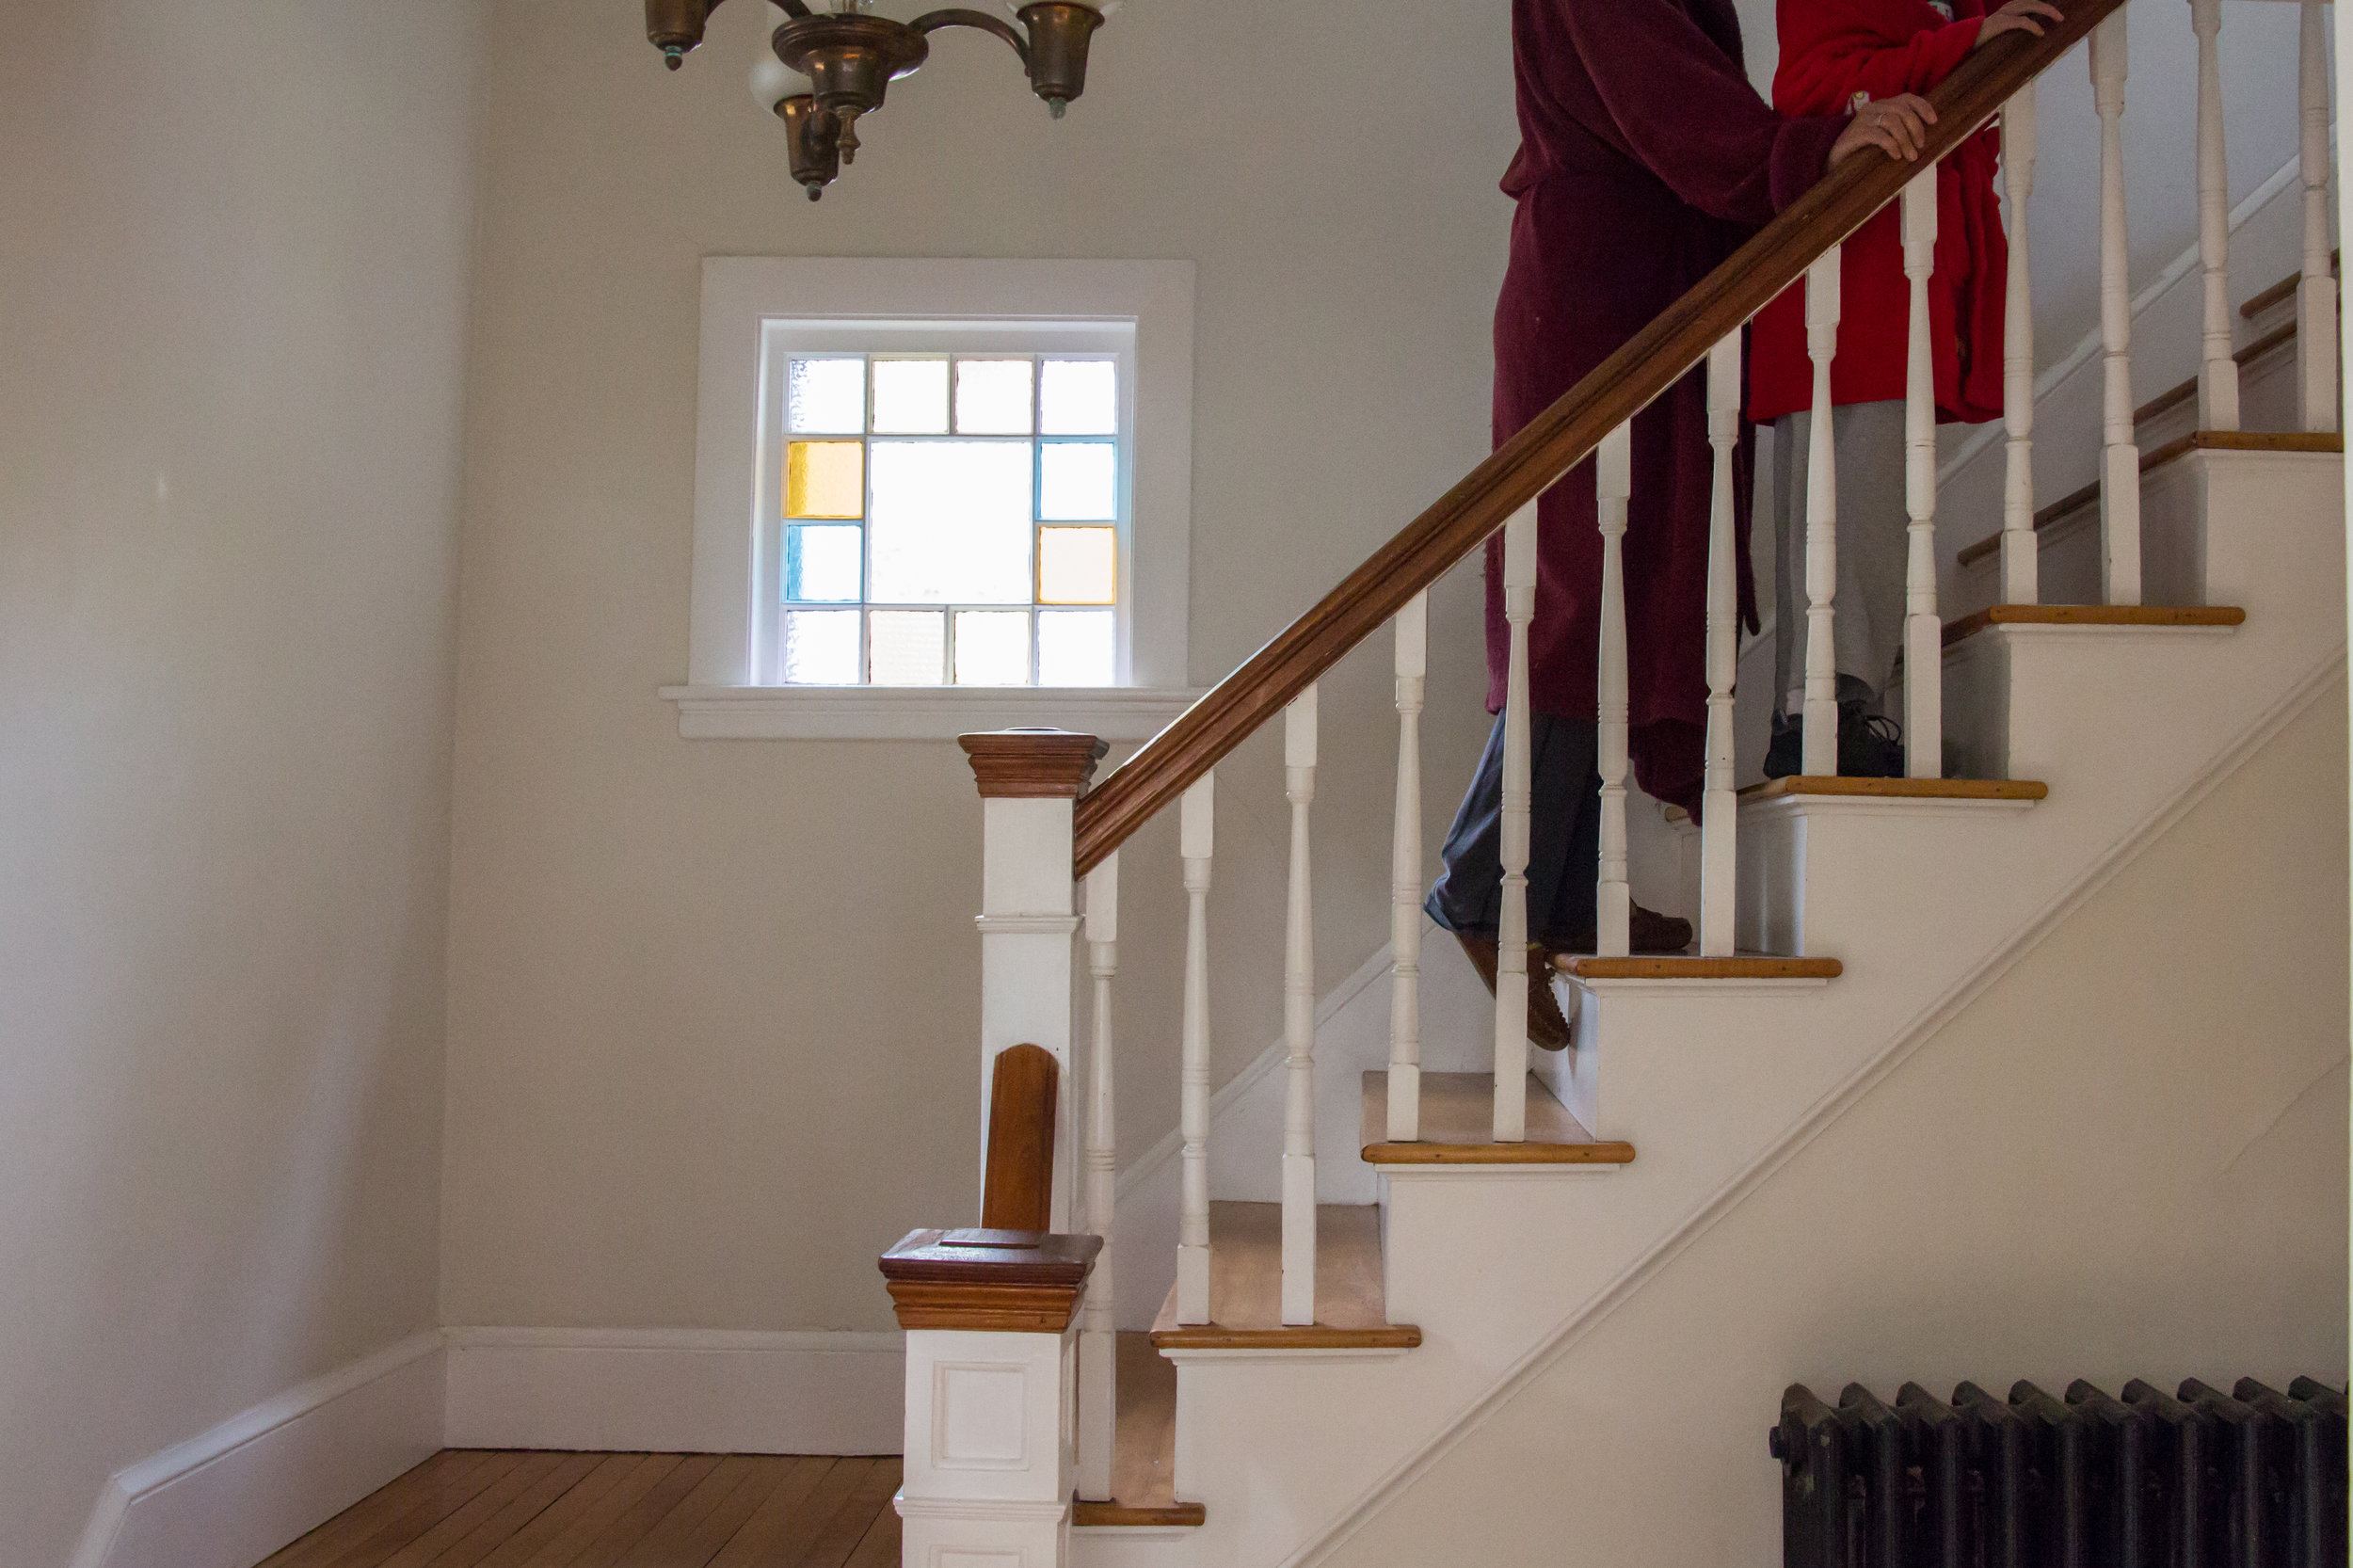 Christy Shake walks behind her son Calvin up the stairs in their home in Brunswick, Maine on September 30, 2017. Though Calvin can walk on his own now, his balance and vision are not good, and he can easily fall without Christy nearby to catch him. Much of their routine when he is home consists of her following him from room to room.